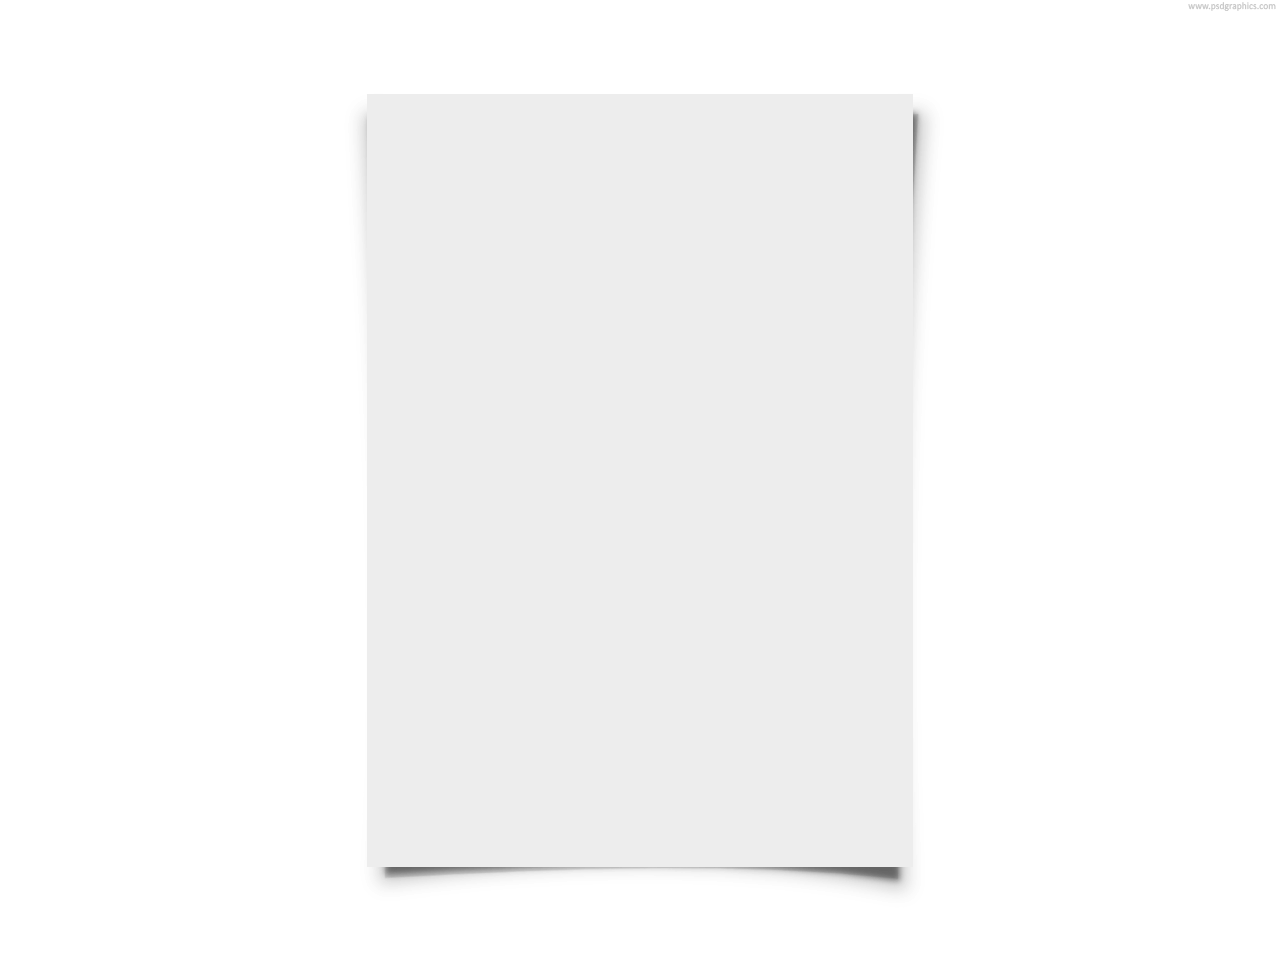 white paper png